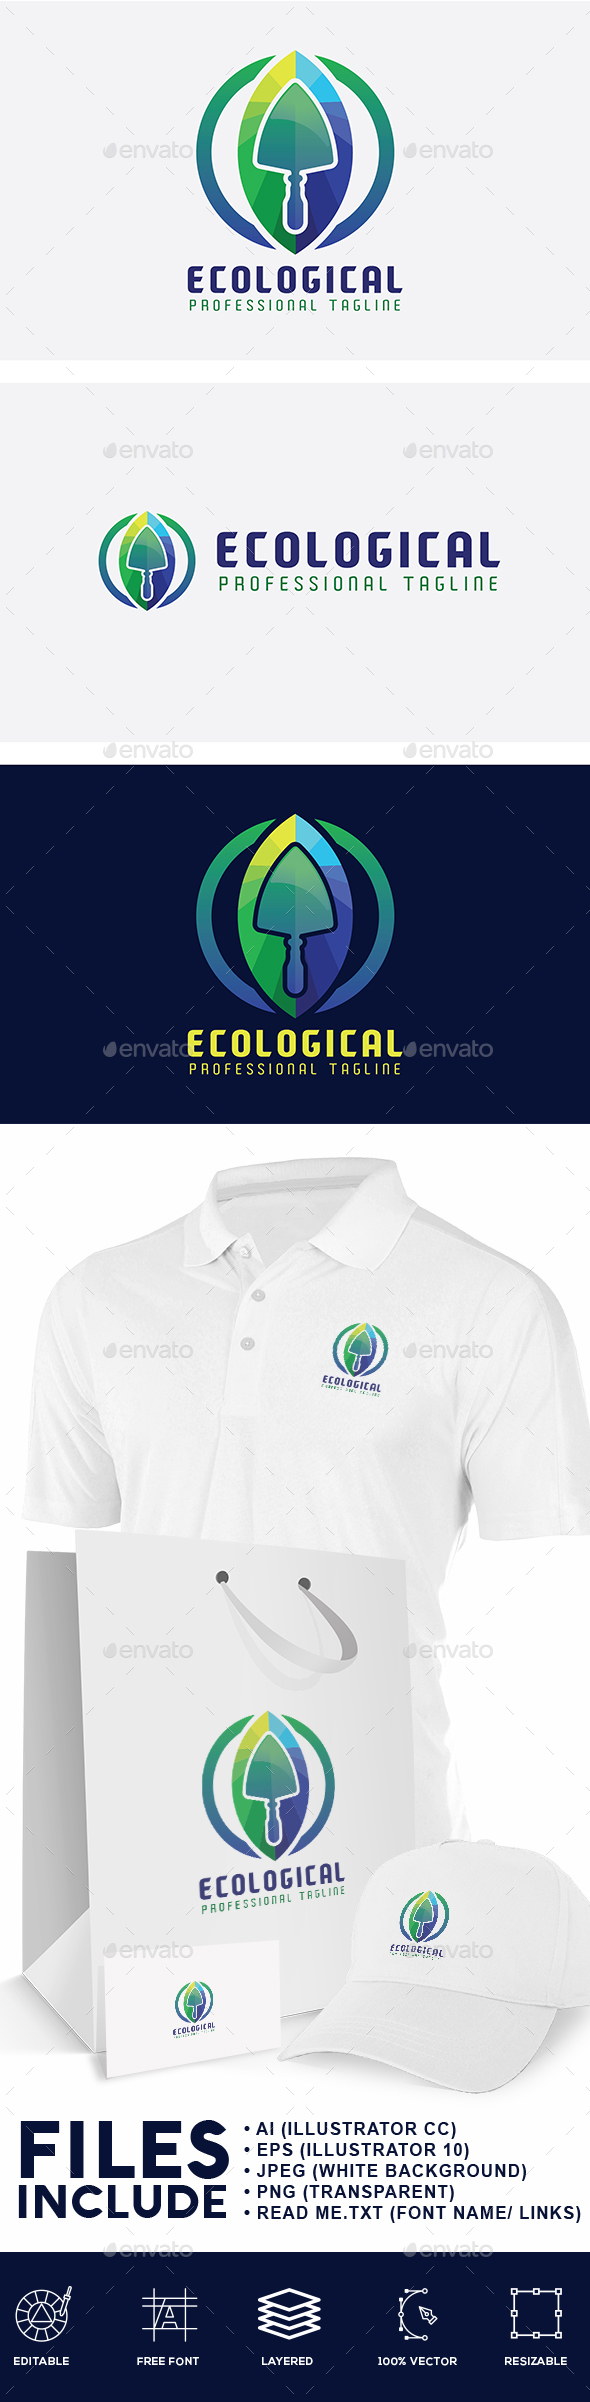 Ecological Logo - Nature Logo Templates